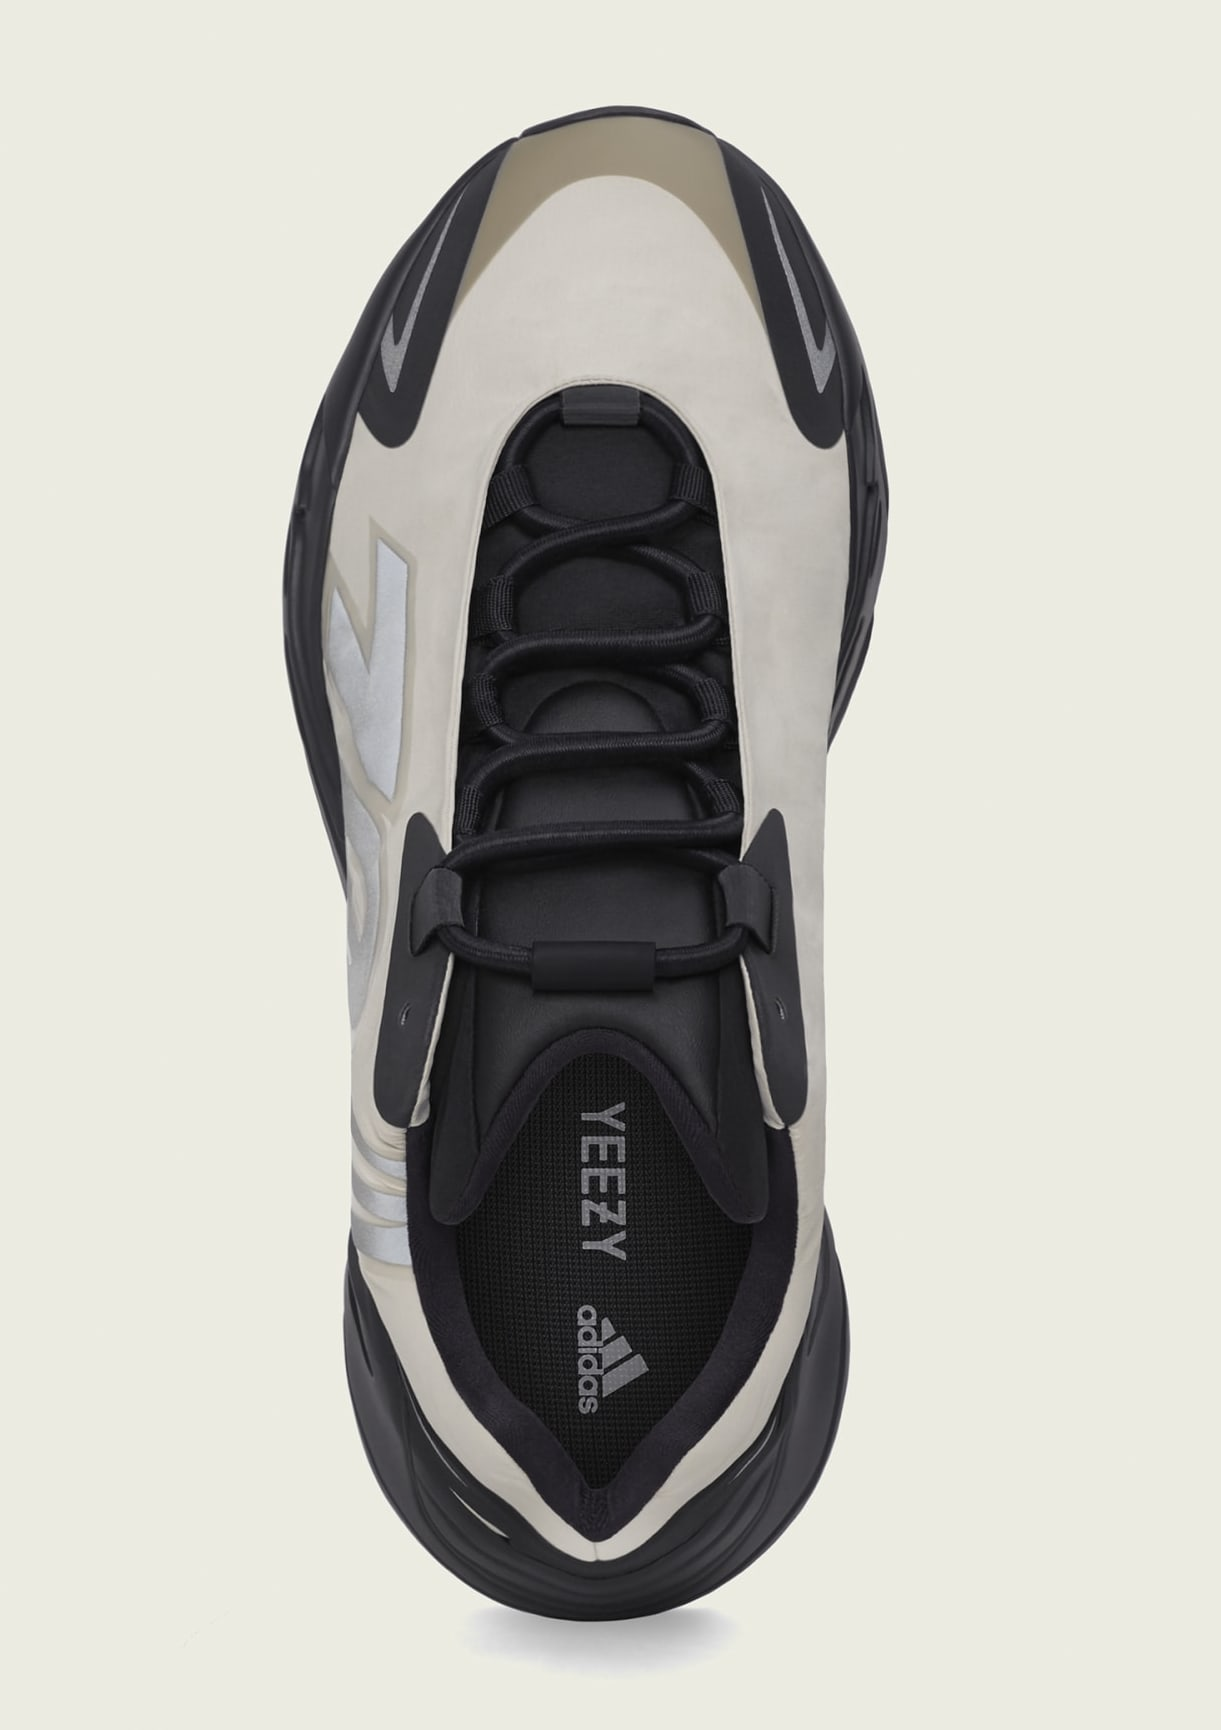 Adidas Yeezy Boost 700 MNVN 'Bone' FY3729 Top